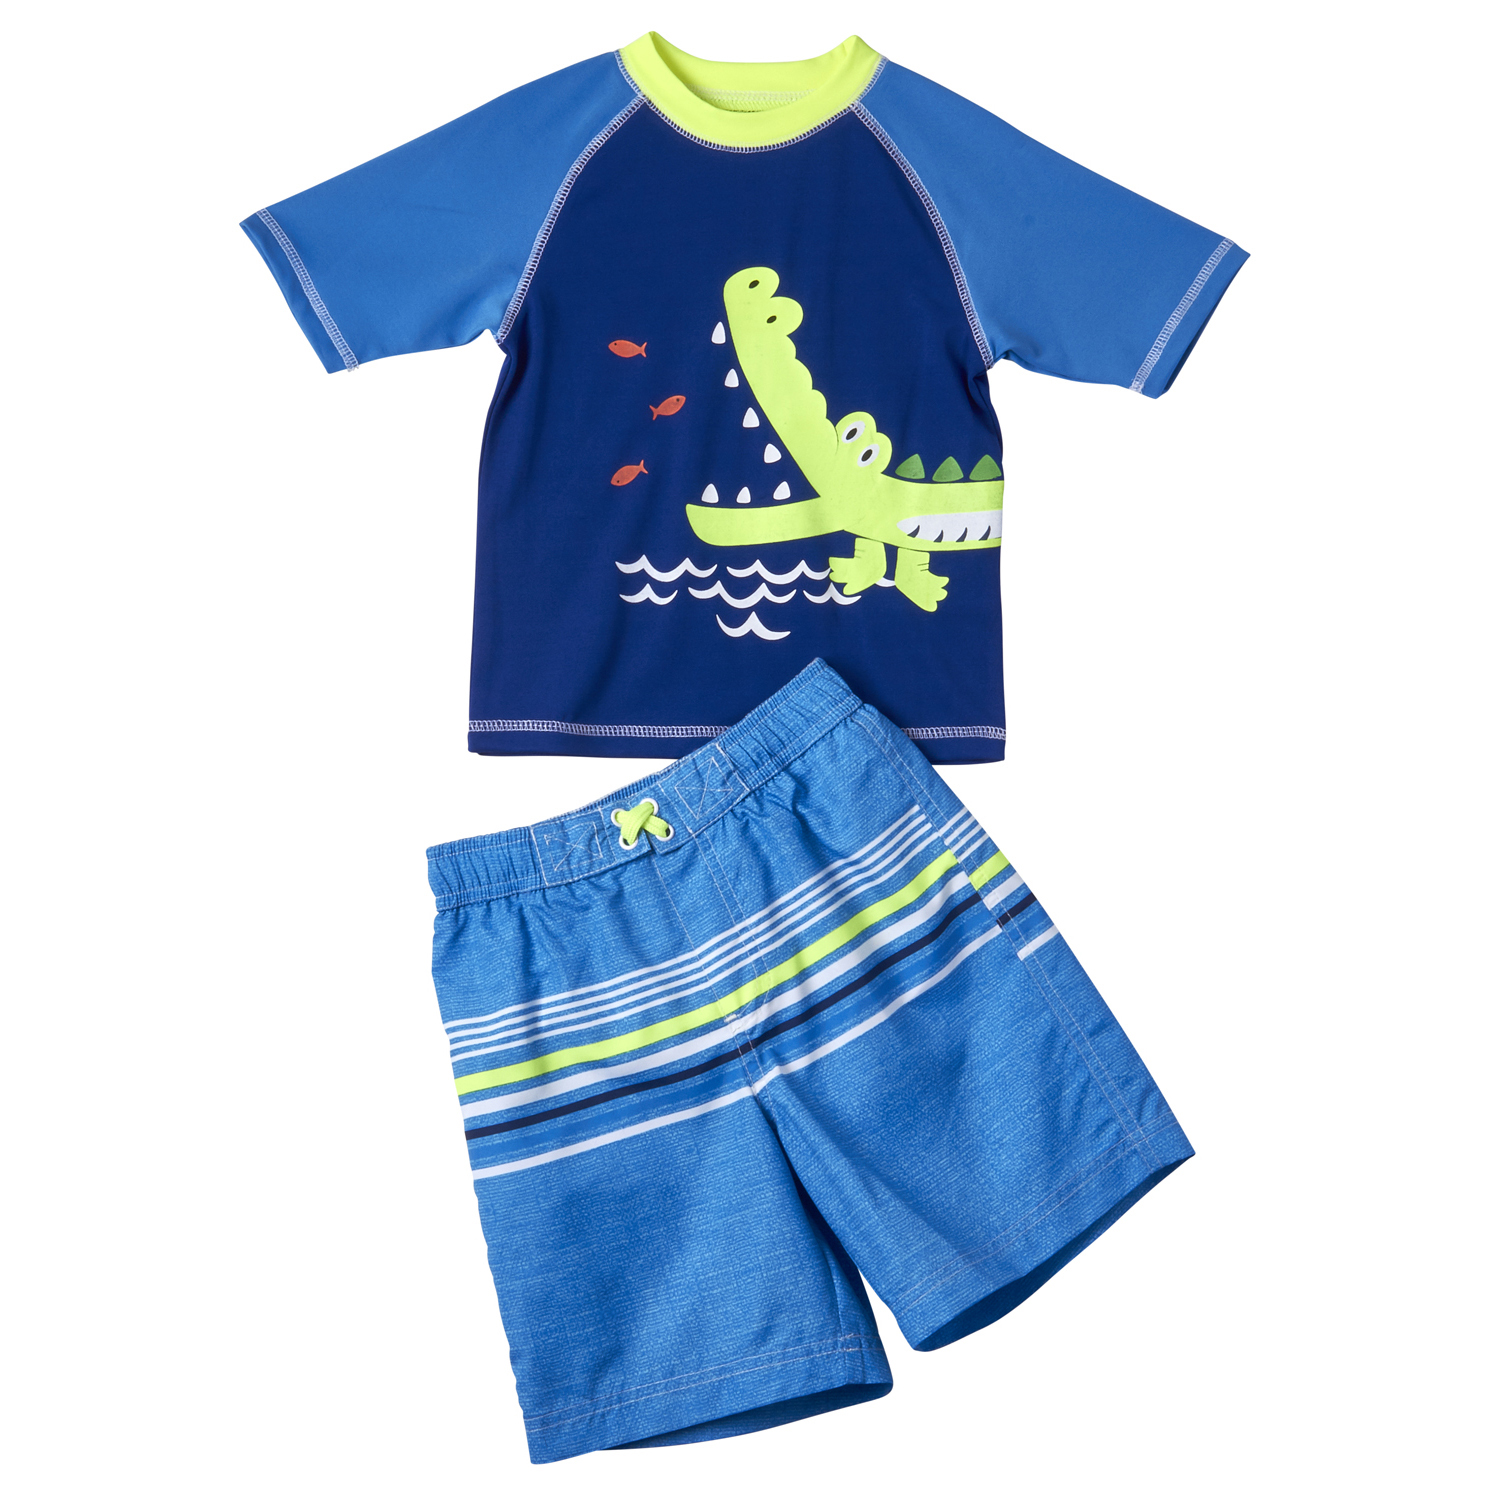 Baby Toddler Boy Aligator Rashguard & Swim Trunks, 2pc Set